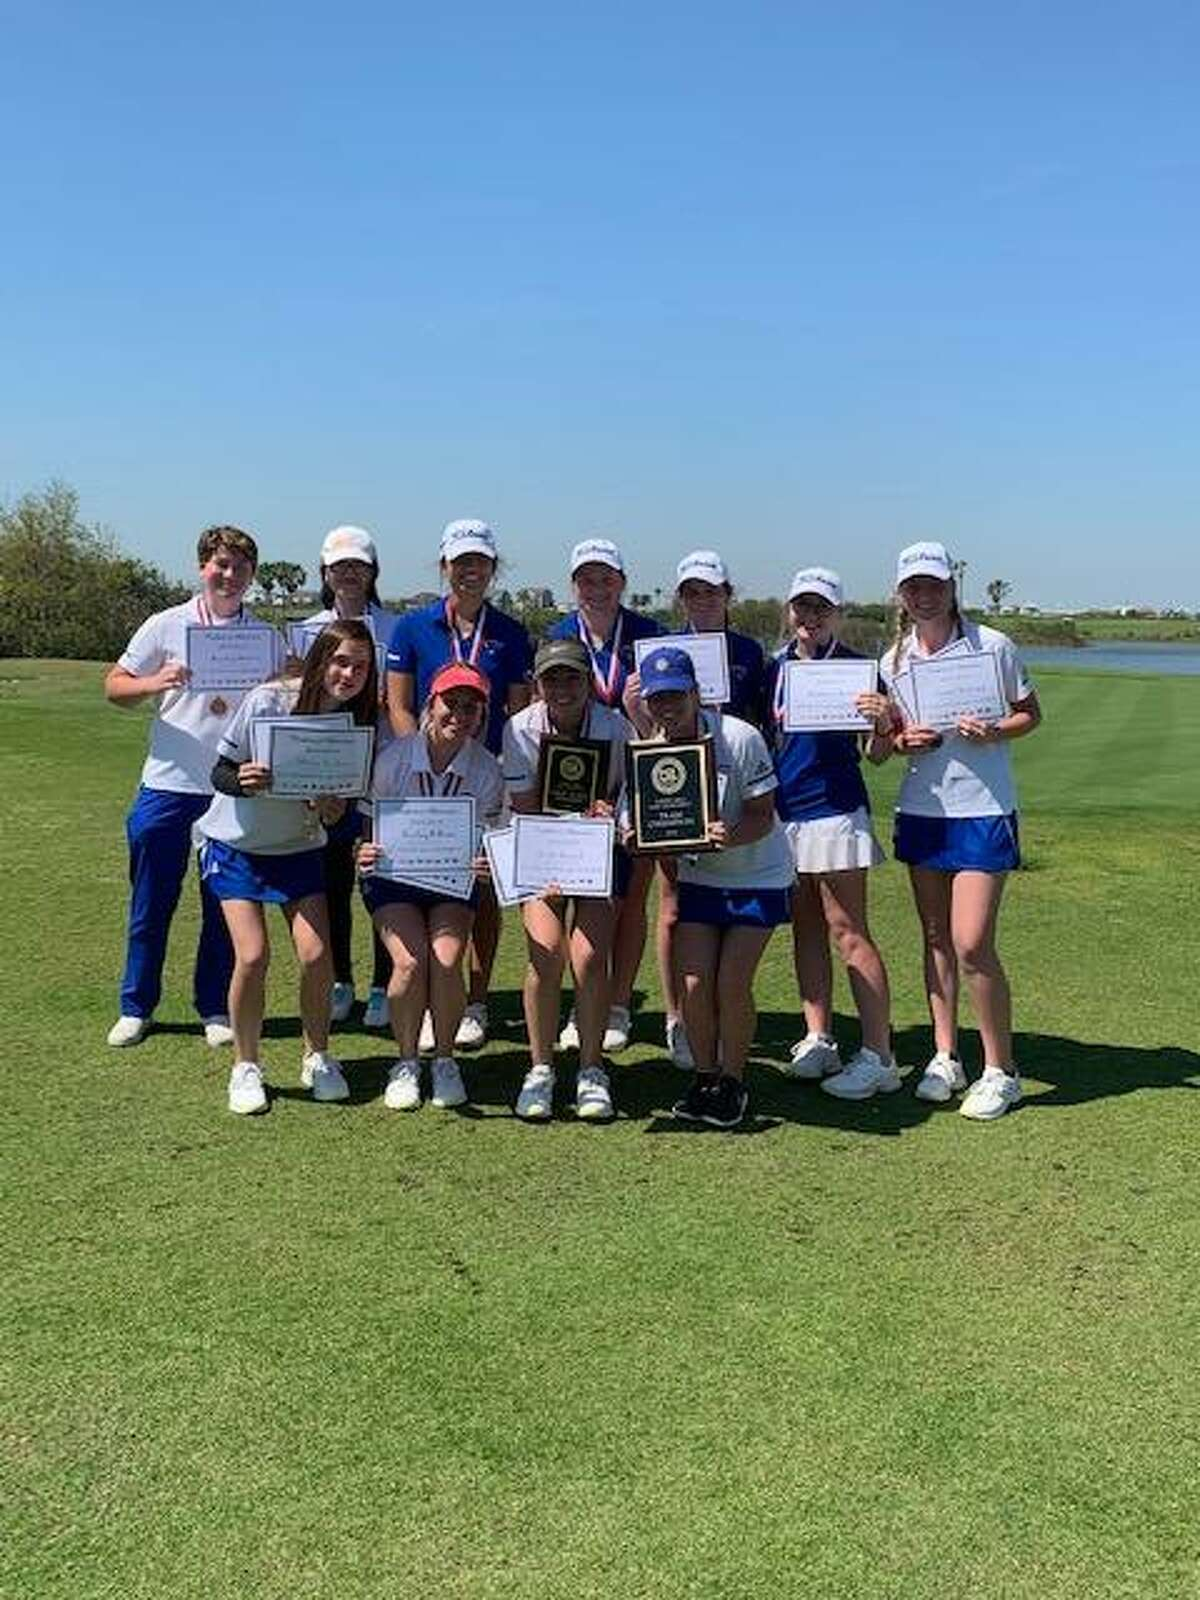 The Friendswood girls' golf team rolled to the District 22-5A championship, winning by 154 strokes over second-place Crosby.